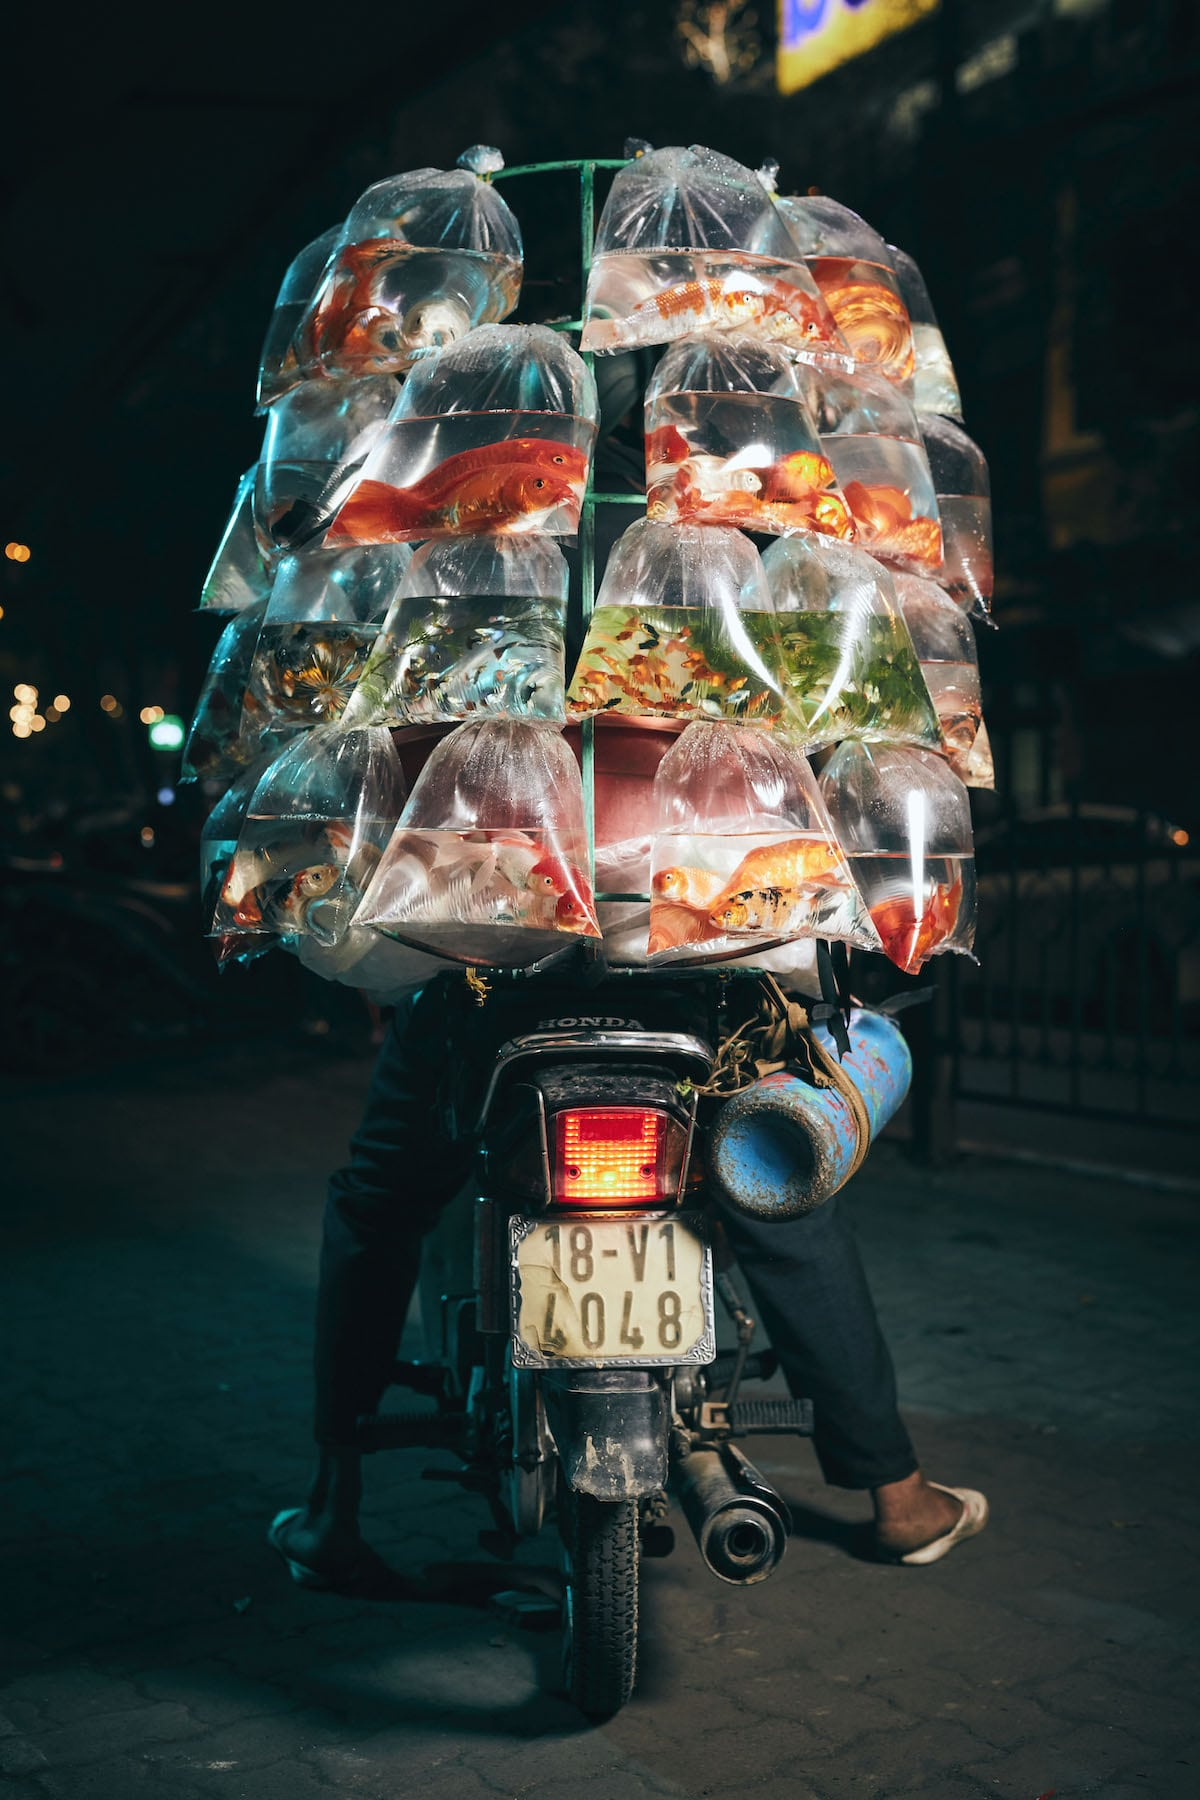 Man Transporting Fish on a Scooter in Vietnam